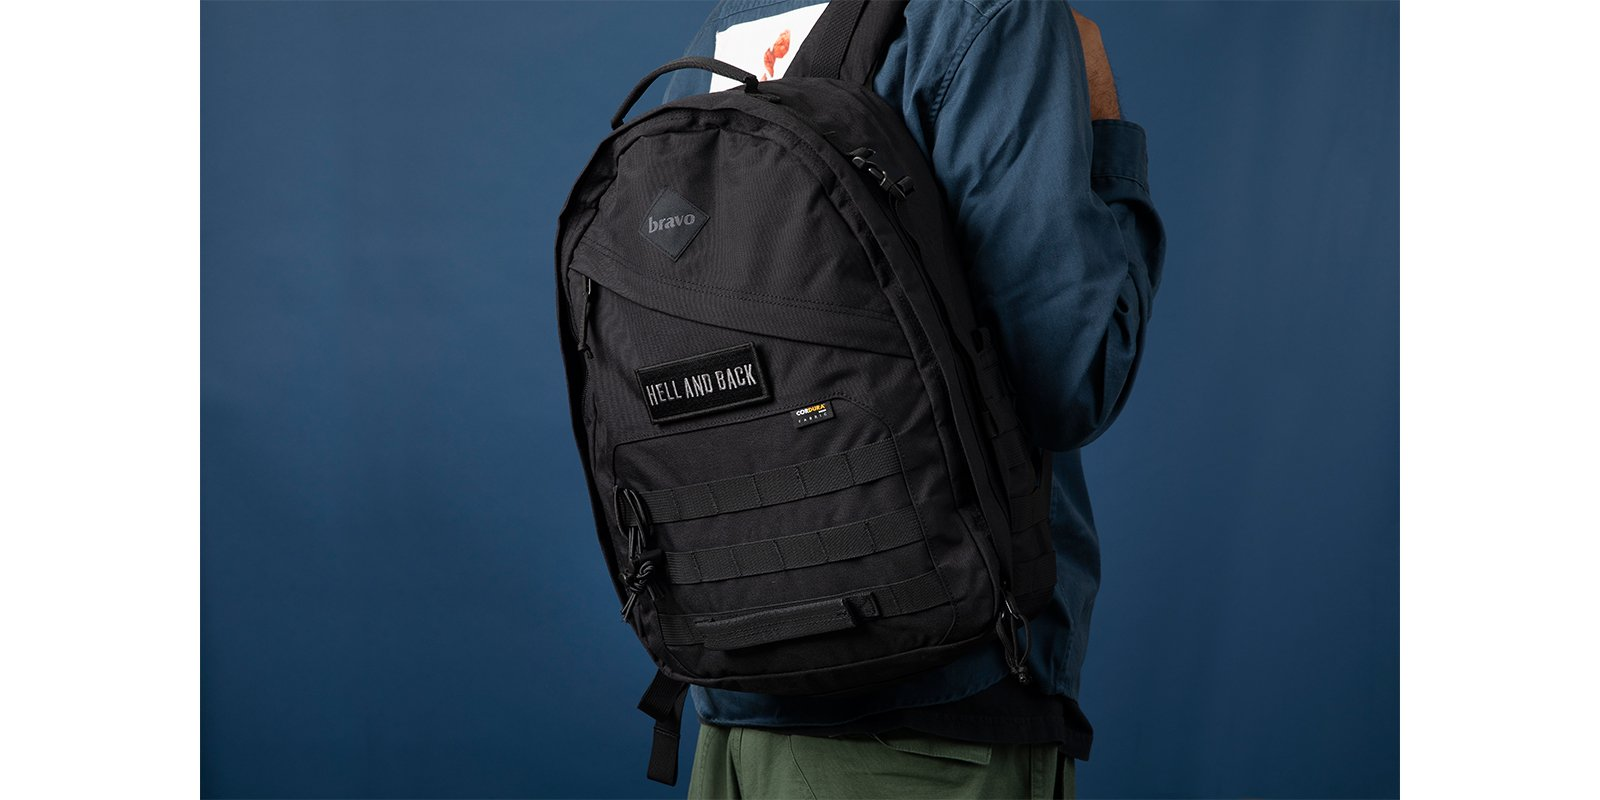 FOXTROT BACKPACK